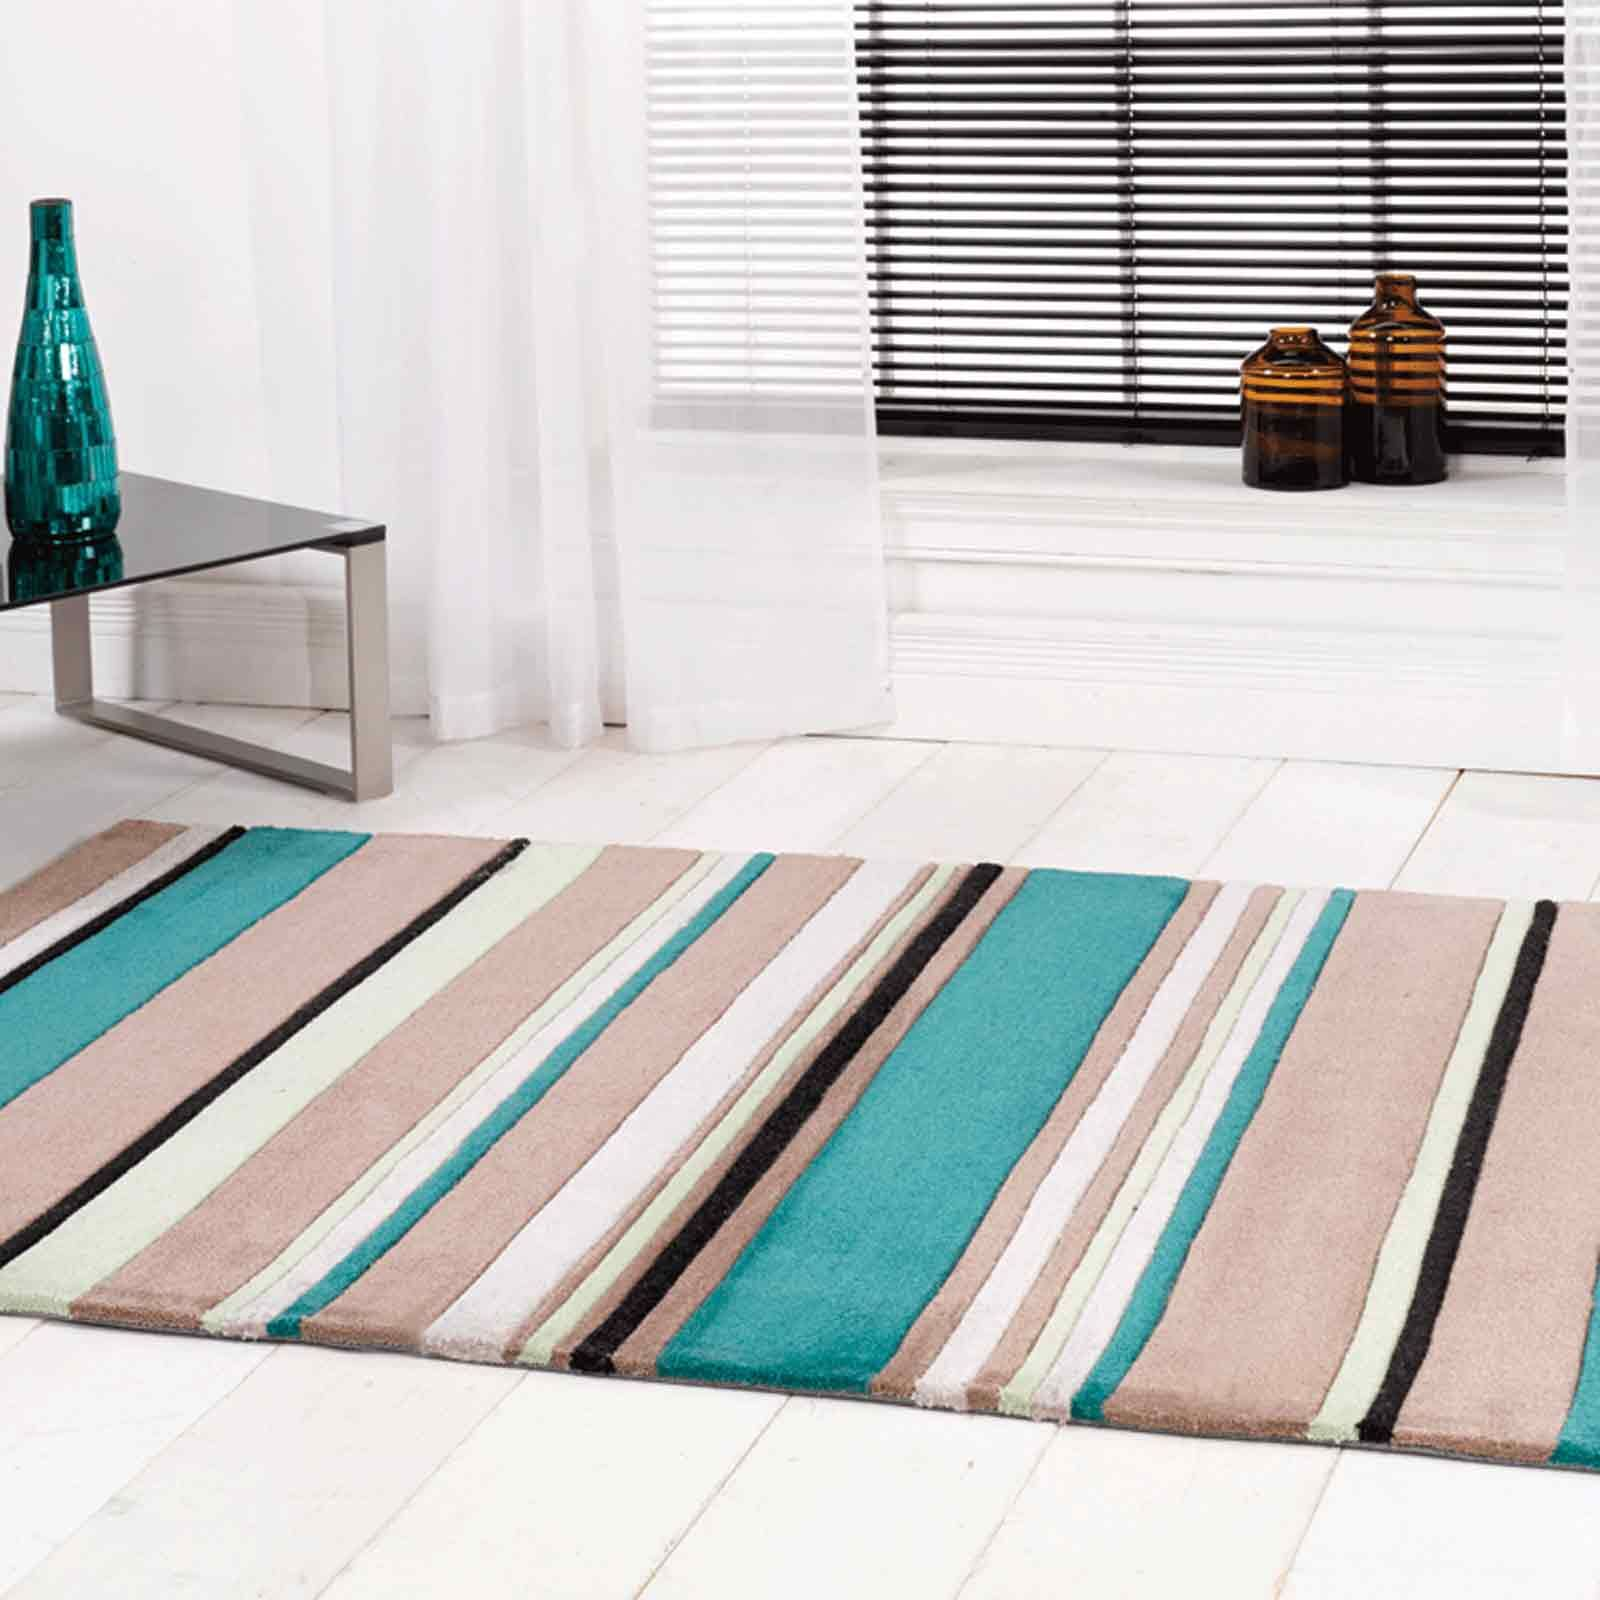 Inspire Broad Stripe Rugs In Teal Turquoise